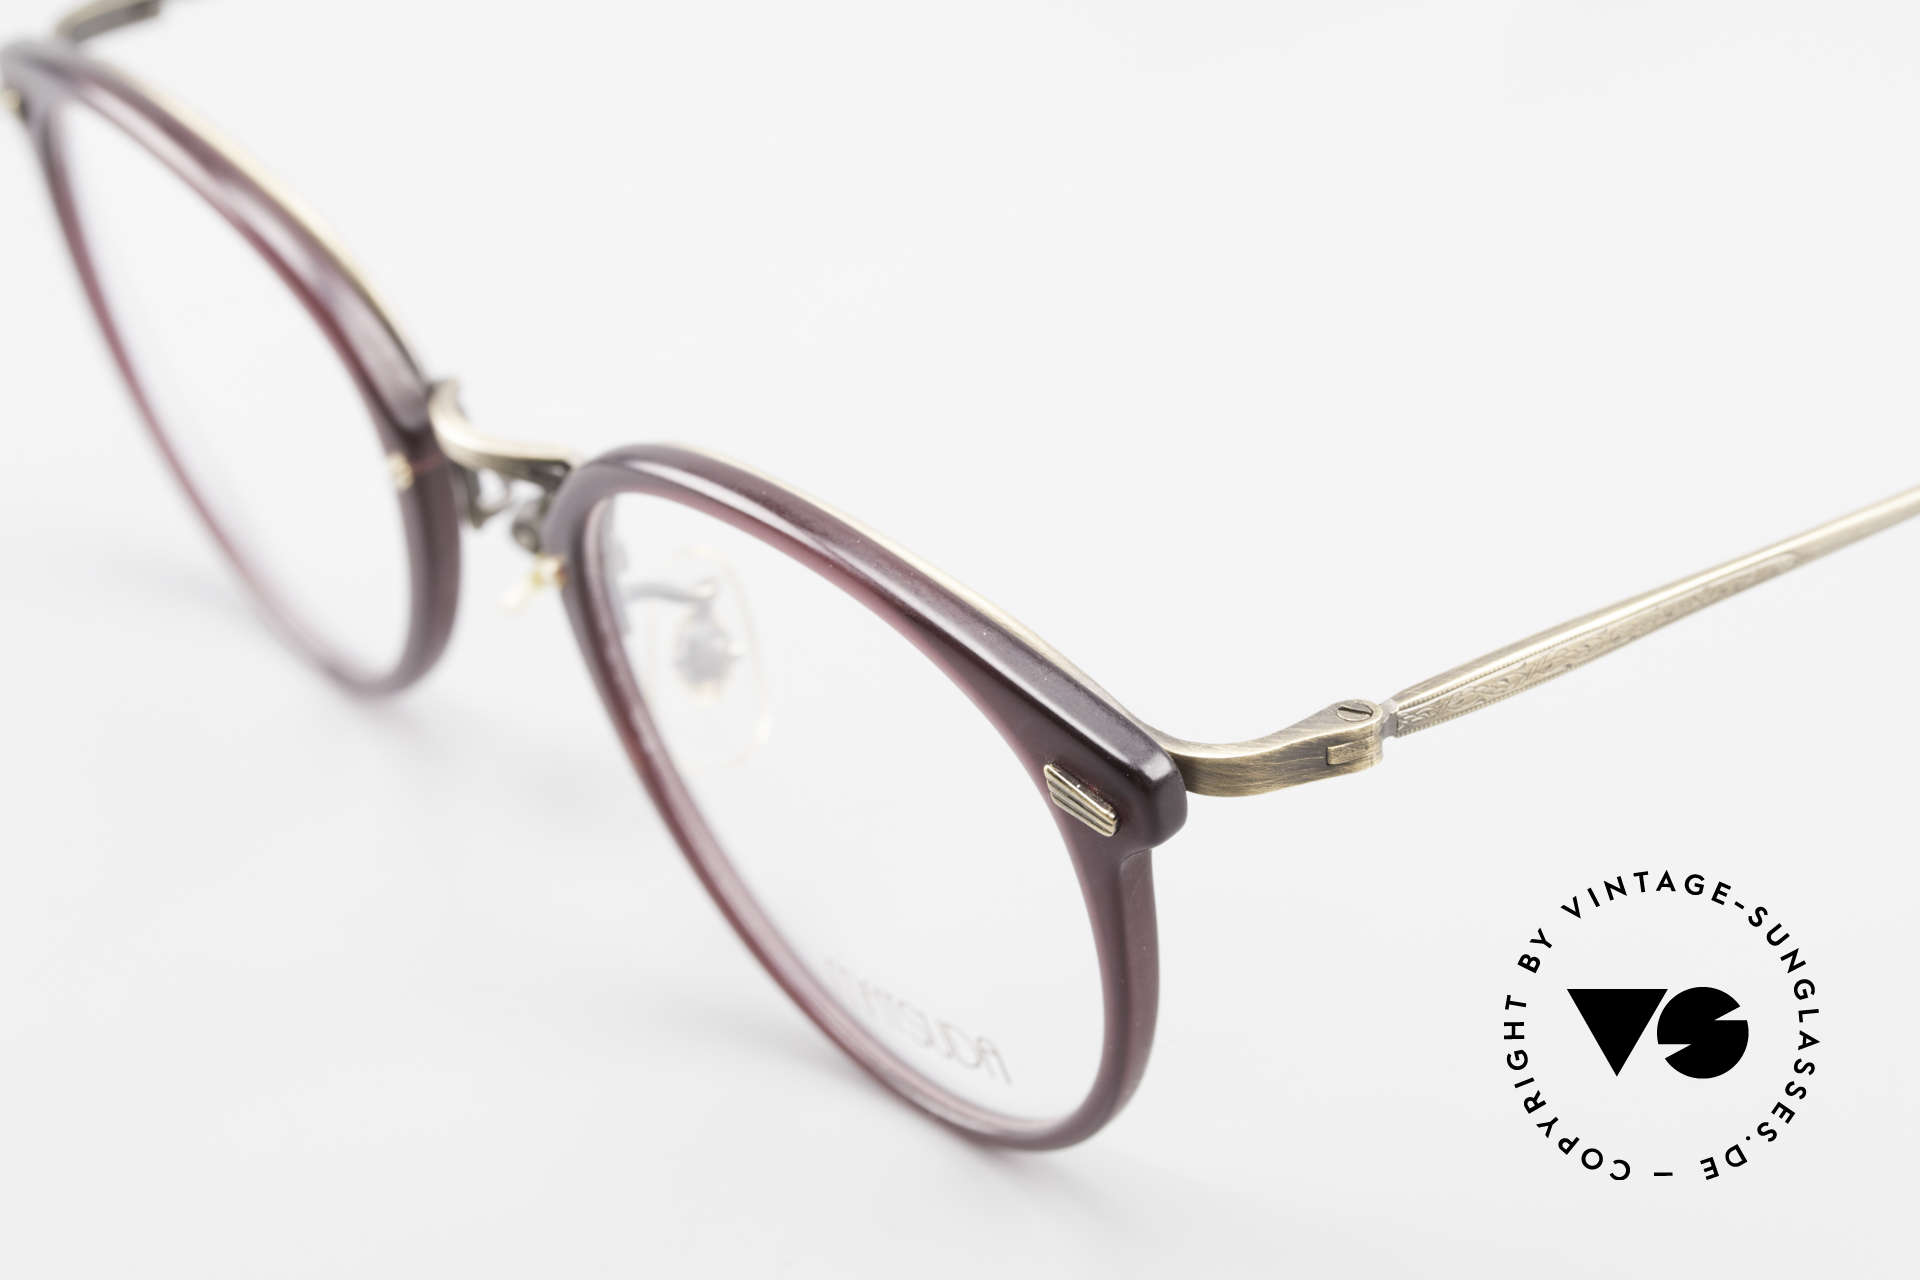 Matsuda 2836 Panto Style 90's Eyeglass-Frame, unworn rarity (a 'must have' for all lovers of quality), Made for Men and Women